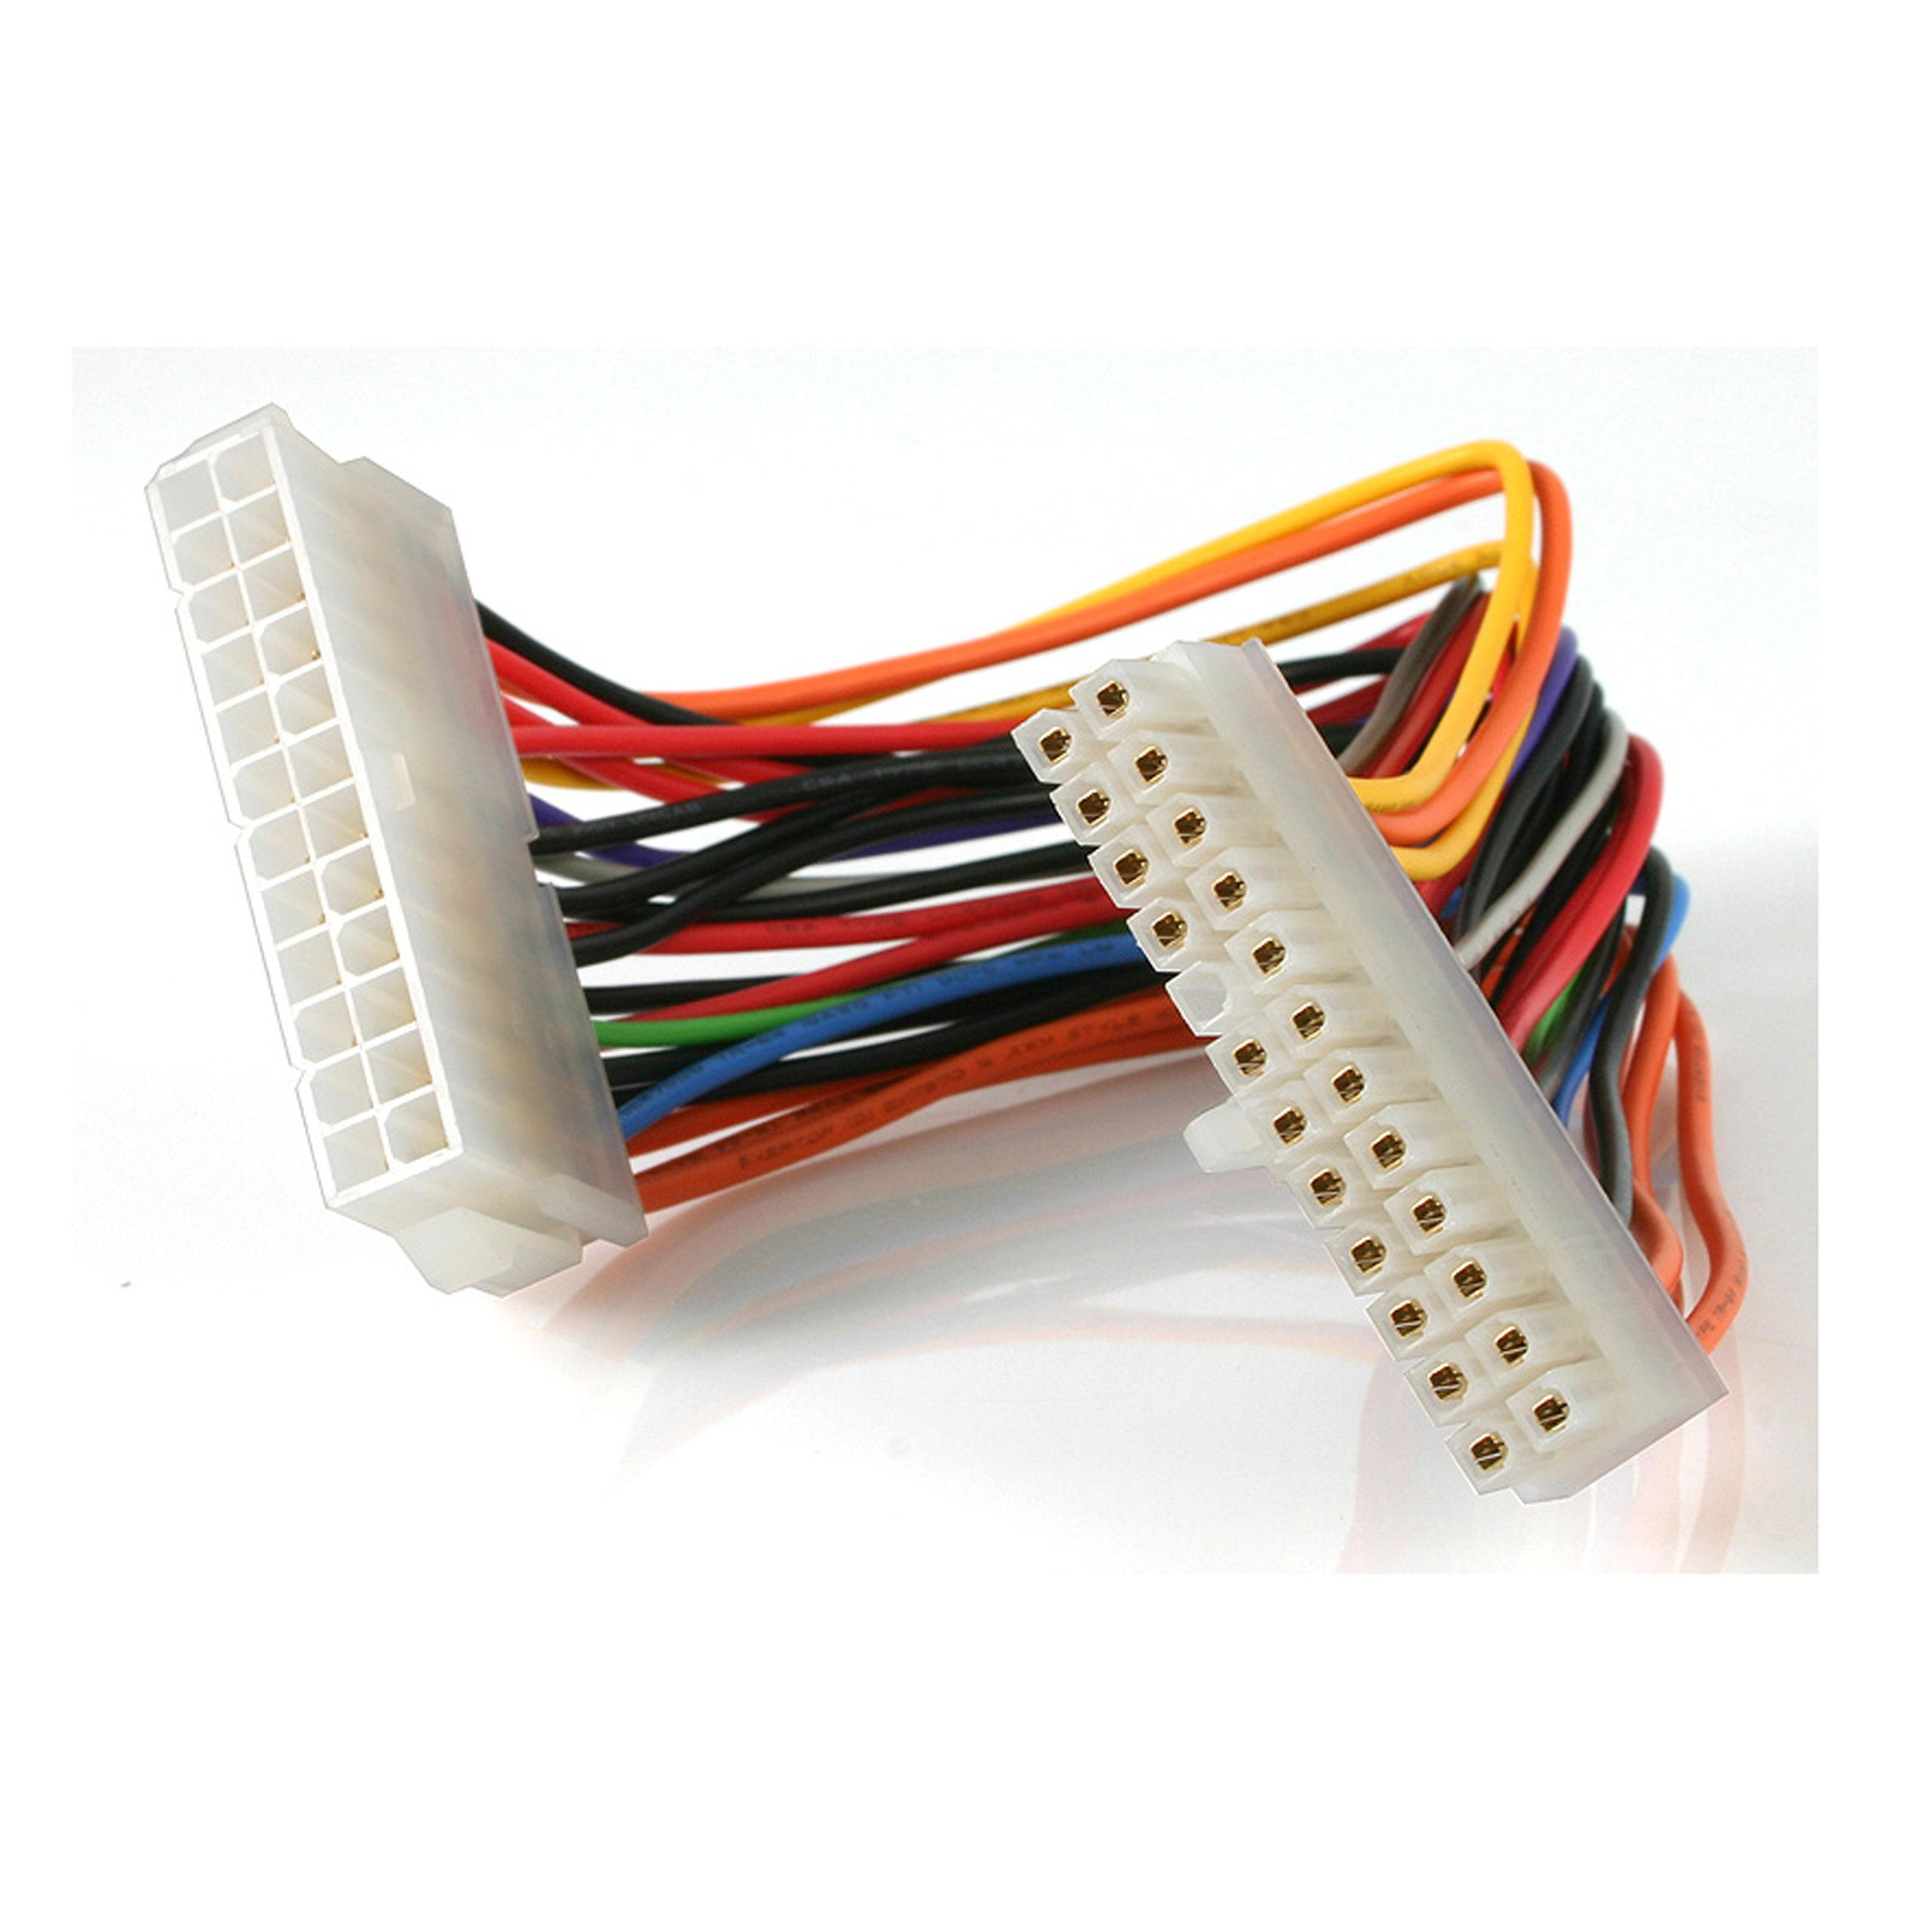 Startech 8 Inch 24 Pin Atx 201 Power Extension Cable Wire Harness From The Manufacturer